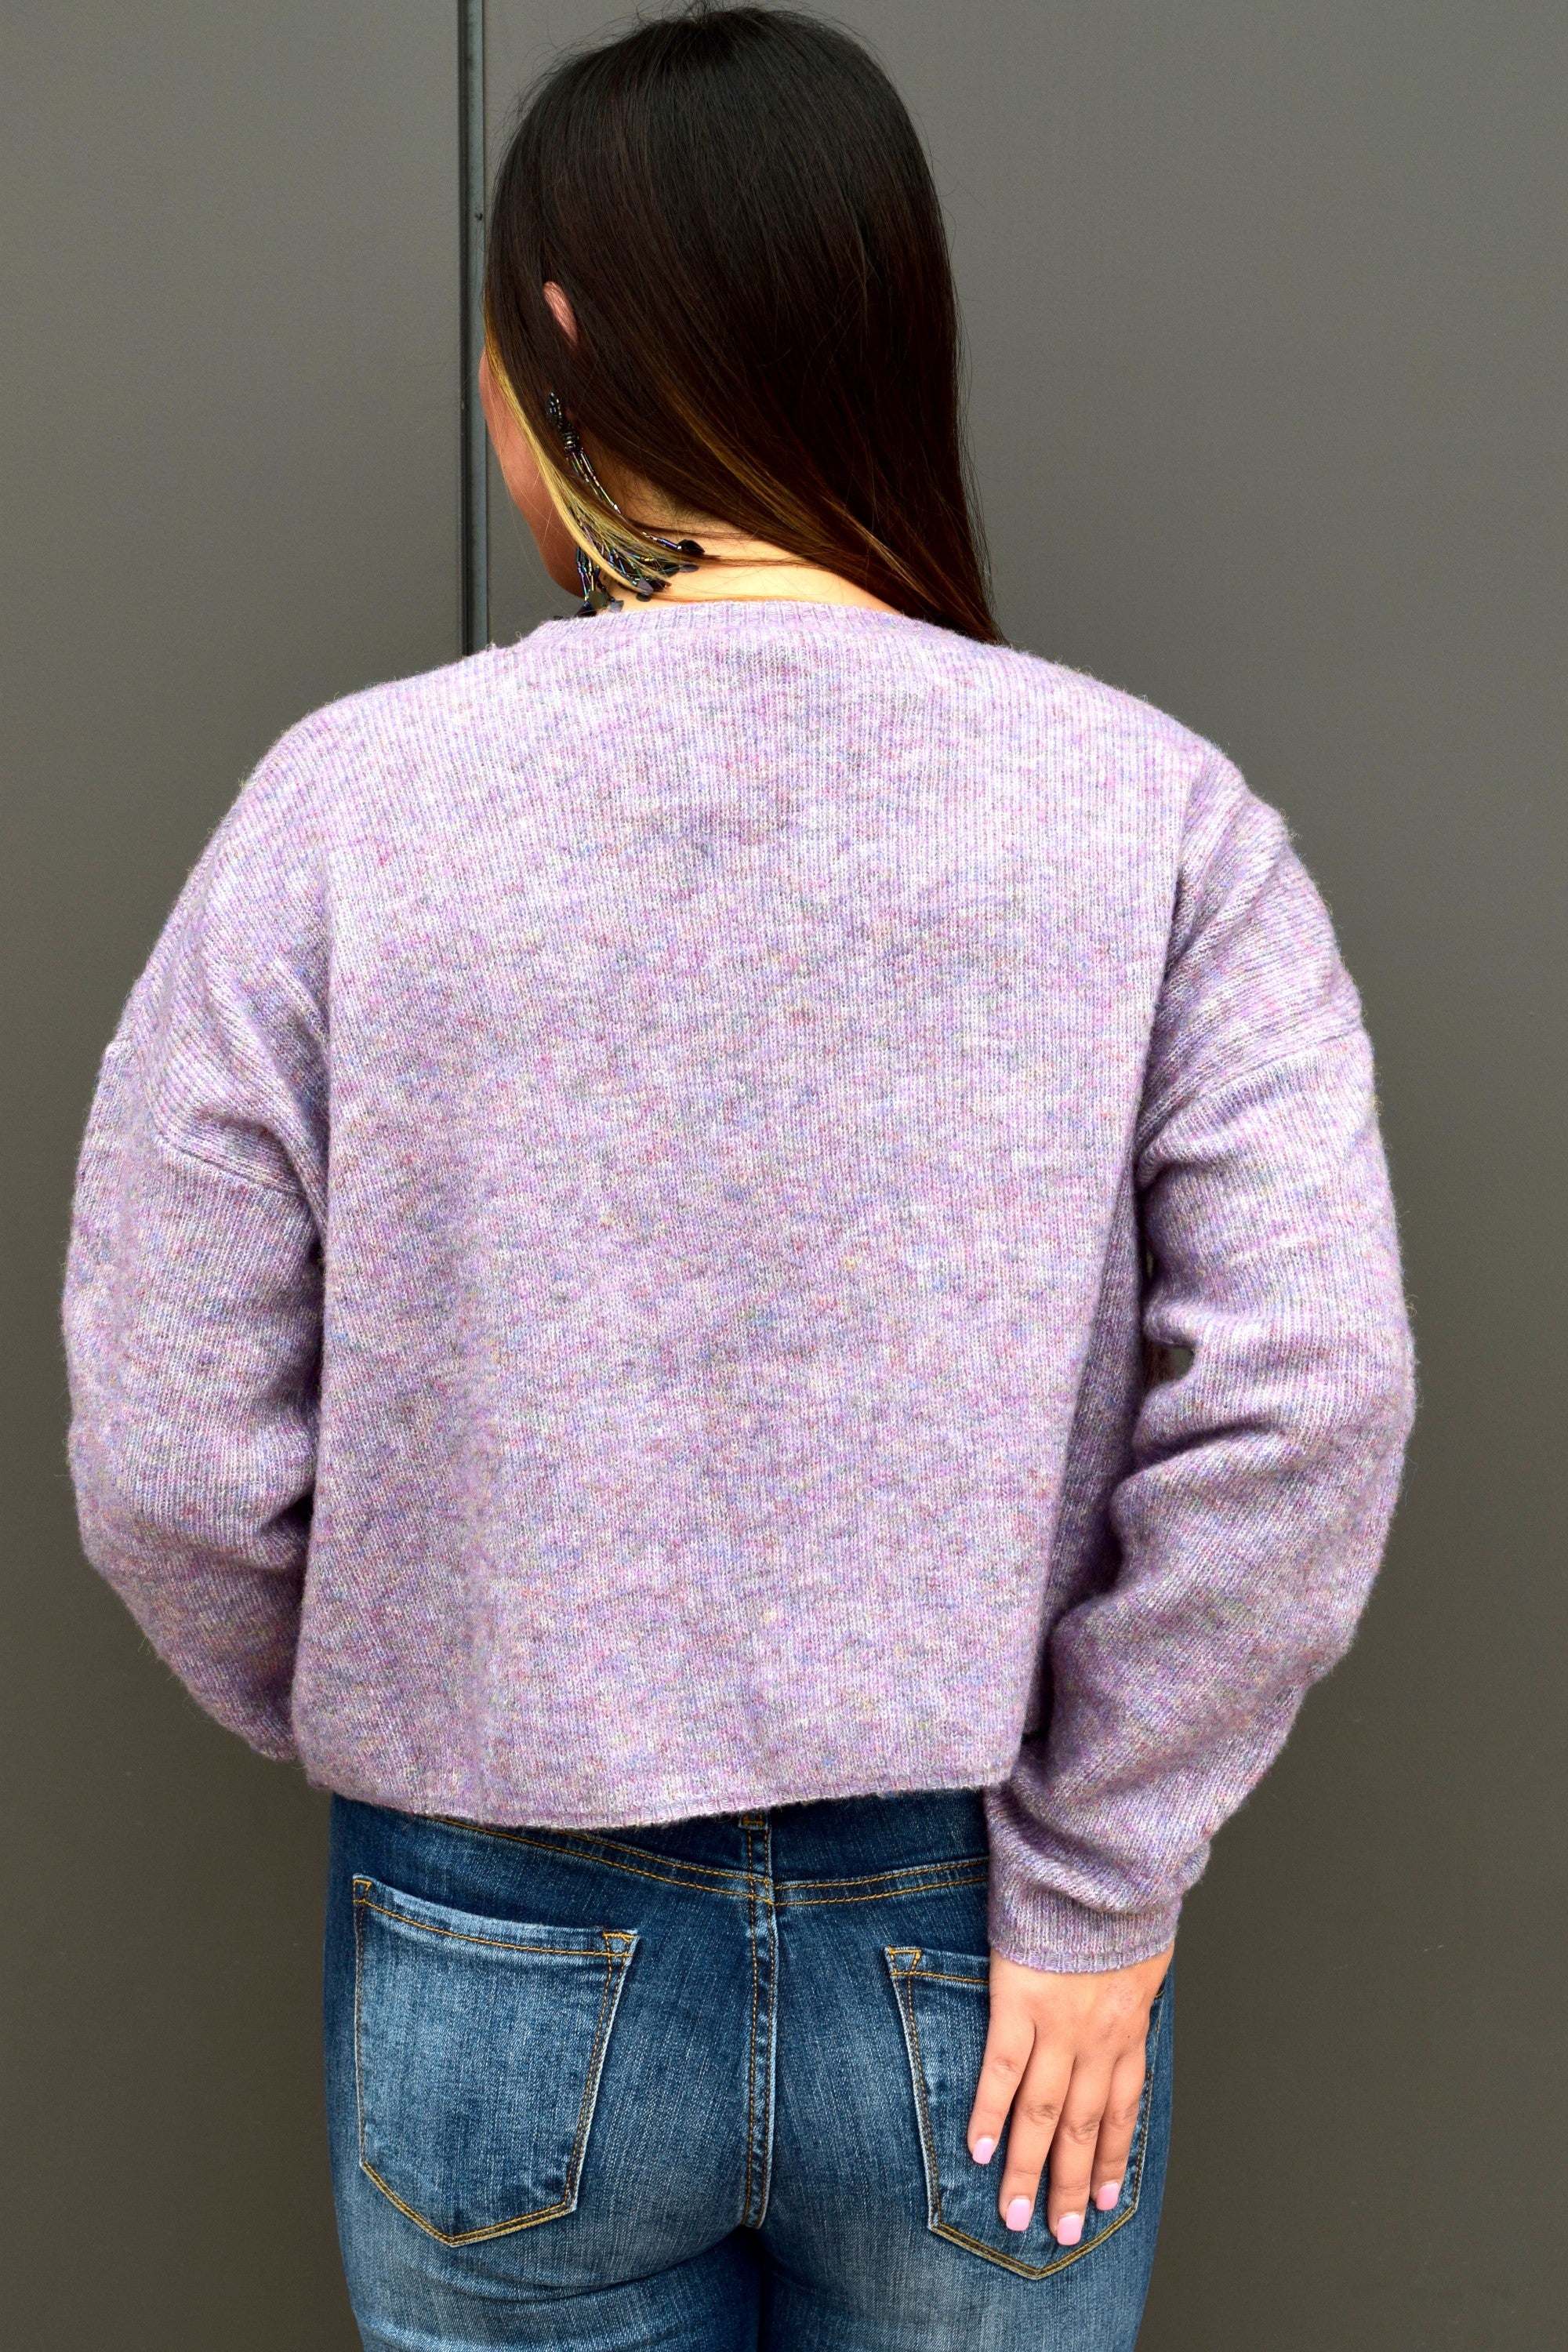 GO YOUR OWN WAY VIOLET SWEATER